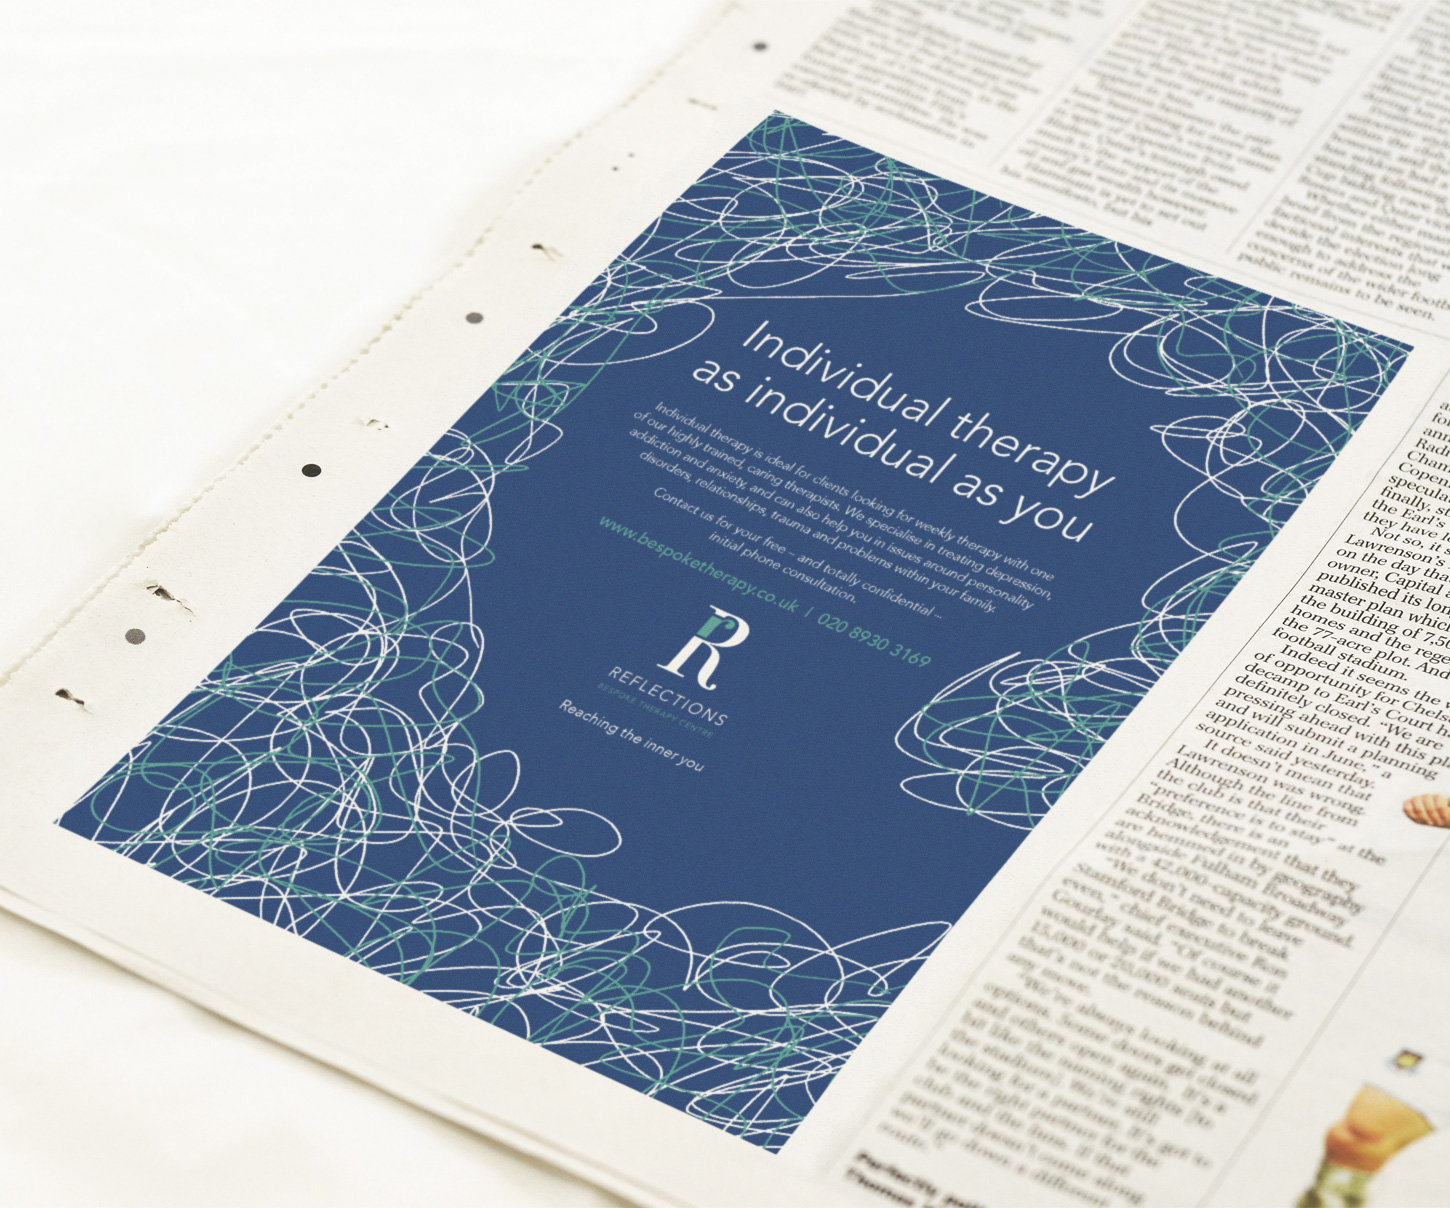 Reflections press advertising and design